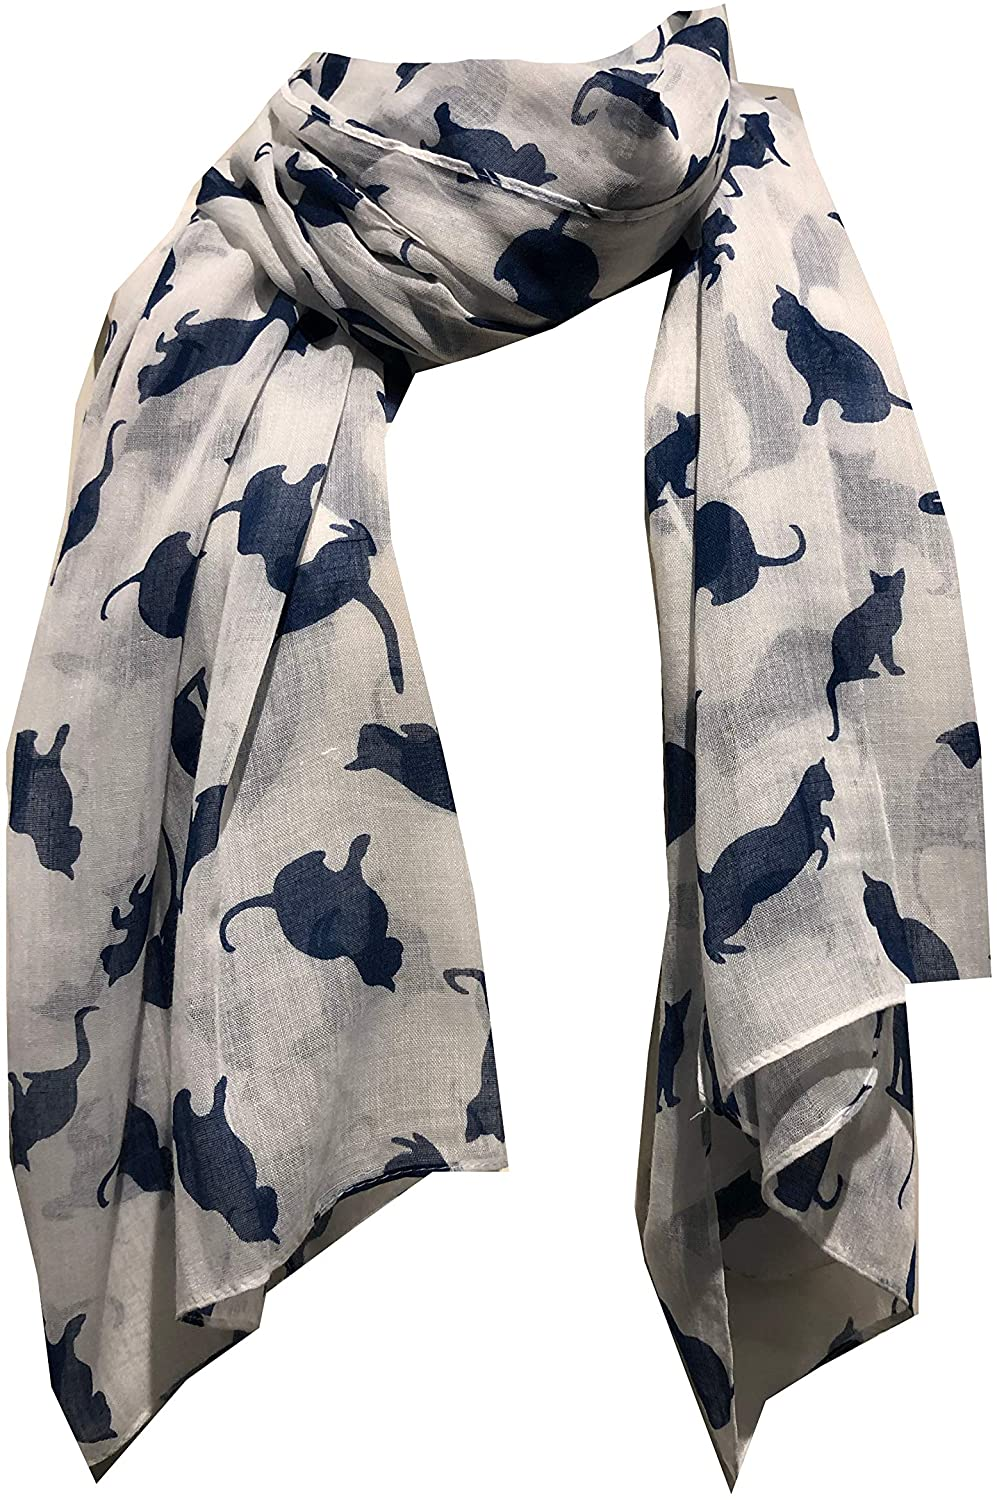 Pamper Yourself Now Creamy White with Navy Cats Scarf, Beautiful Gifts/Present for cat Lovers.